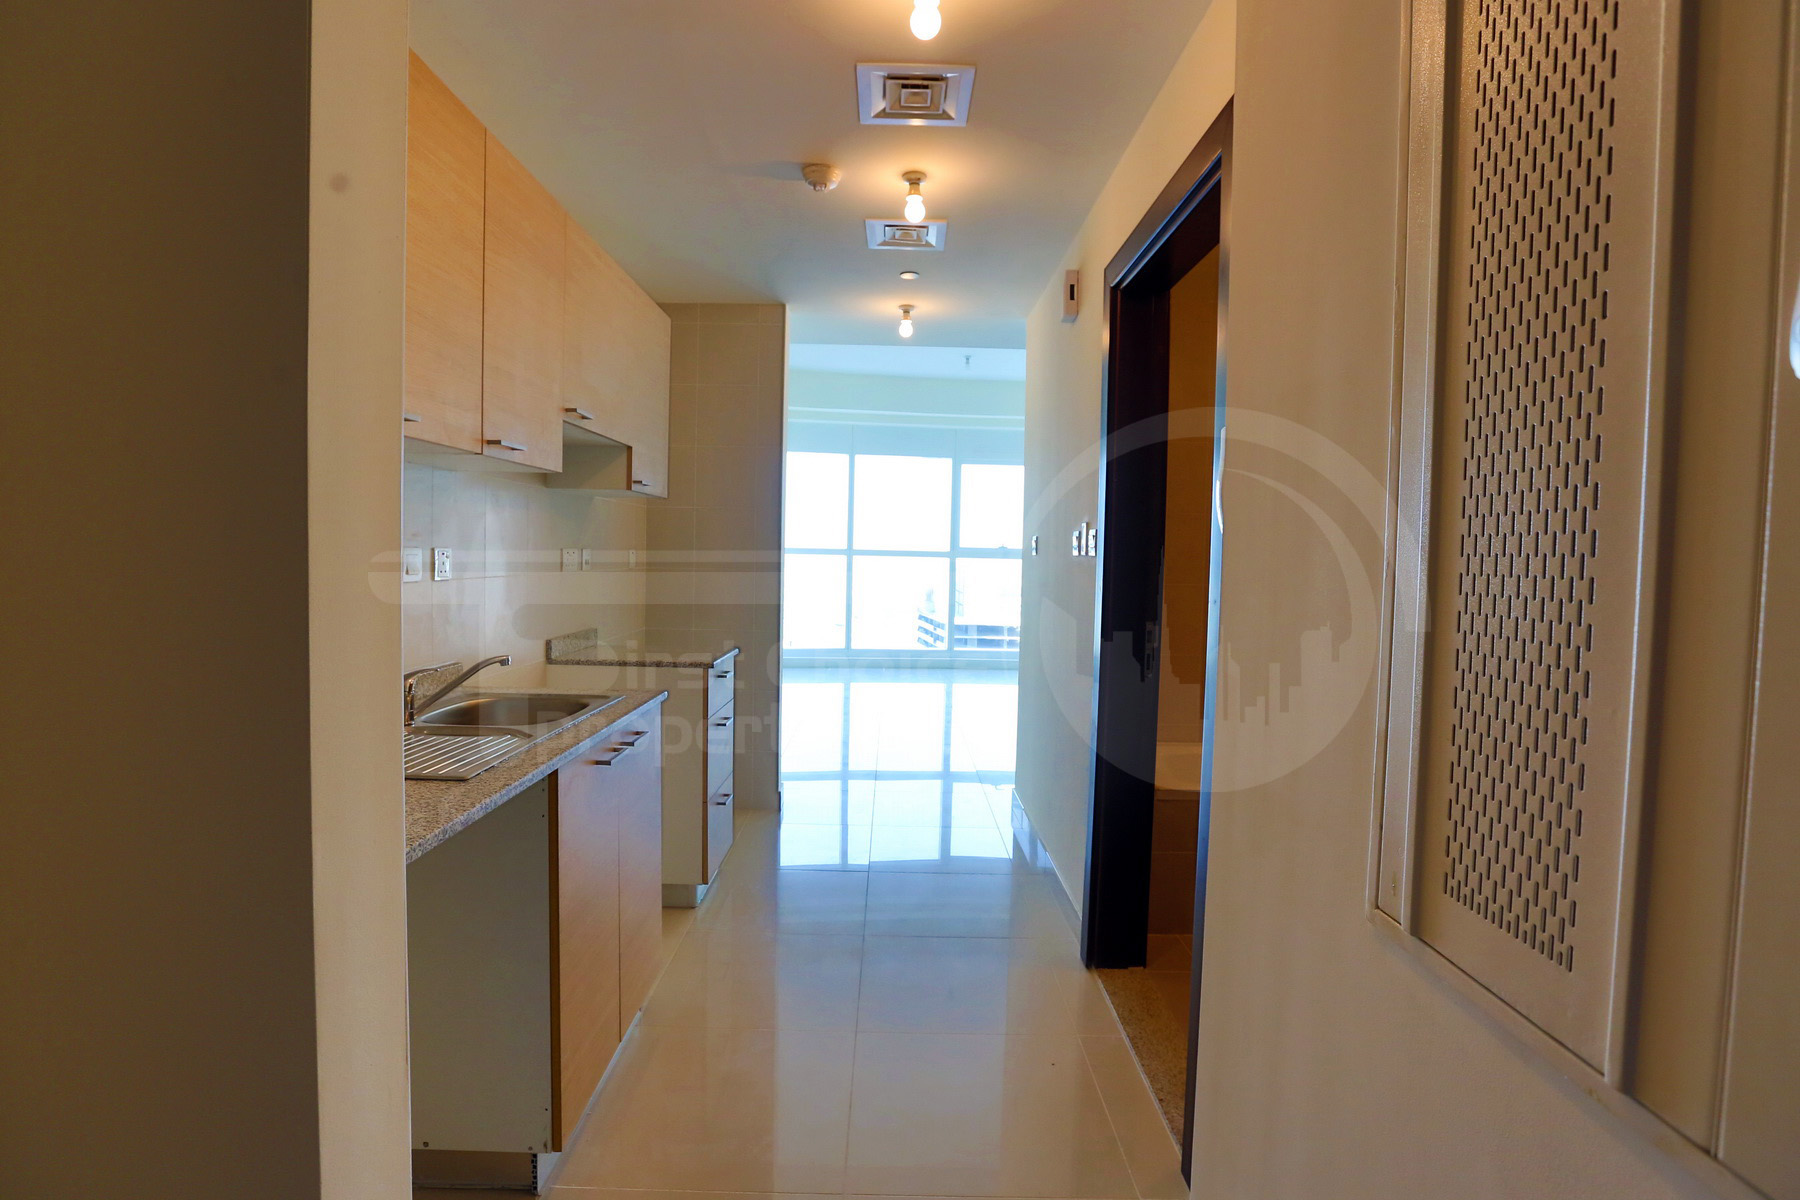 Studio Apartment - Abu Dhabi - UAE - Al Reem Island - City of Lights - C10 Building (11).JPG